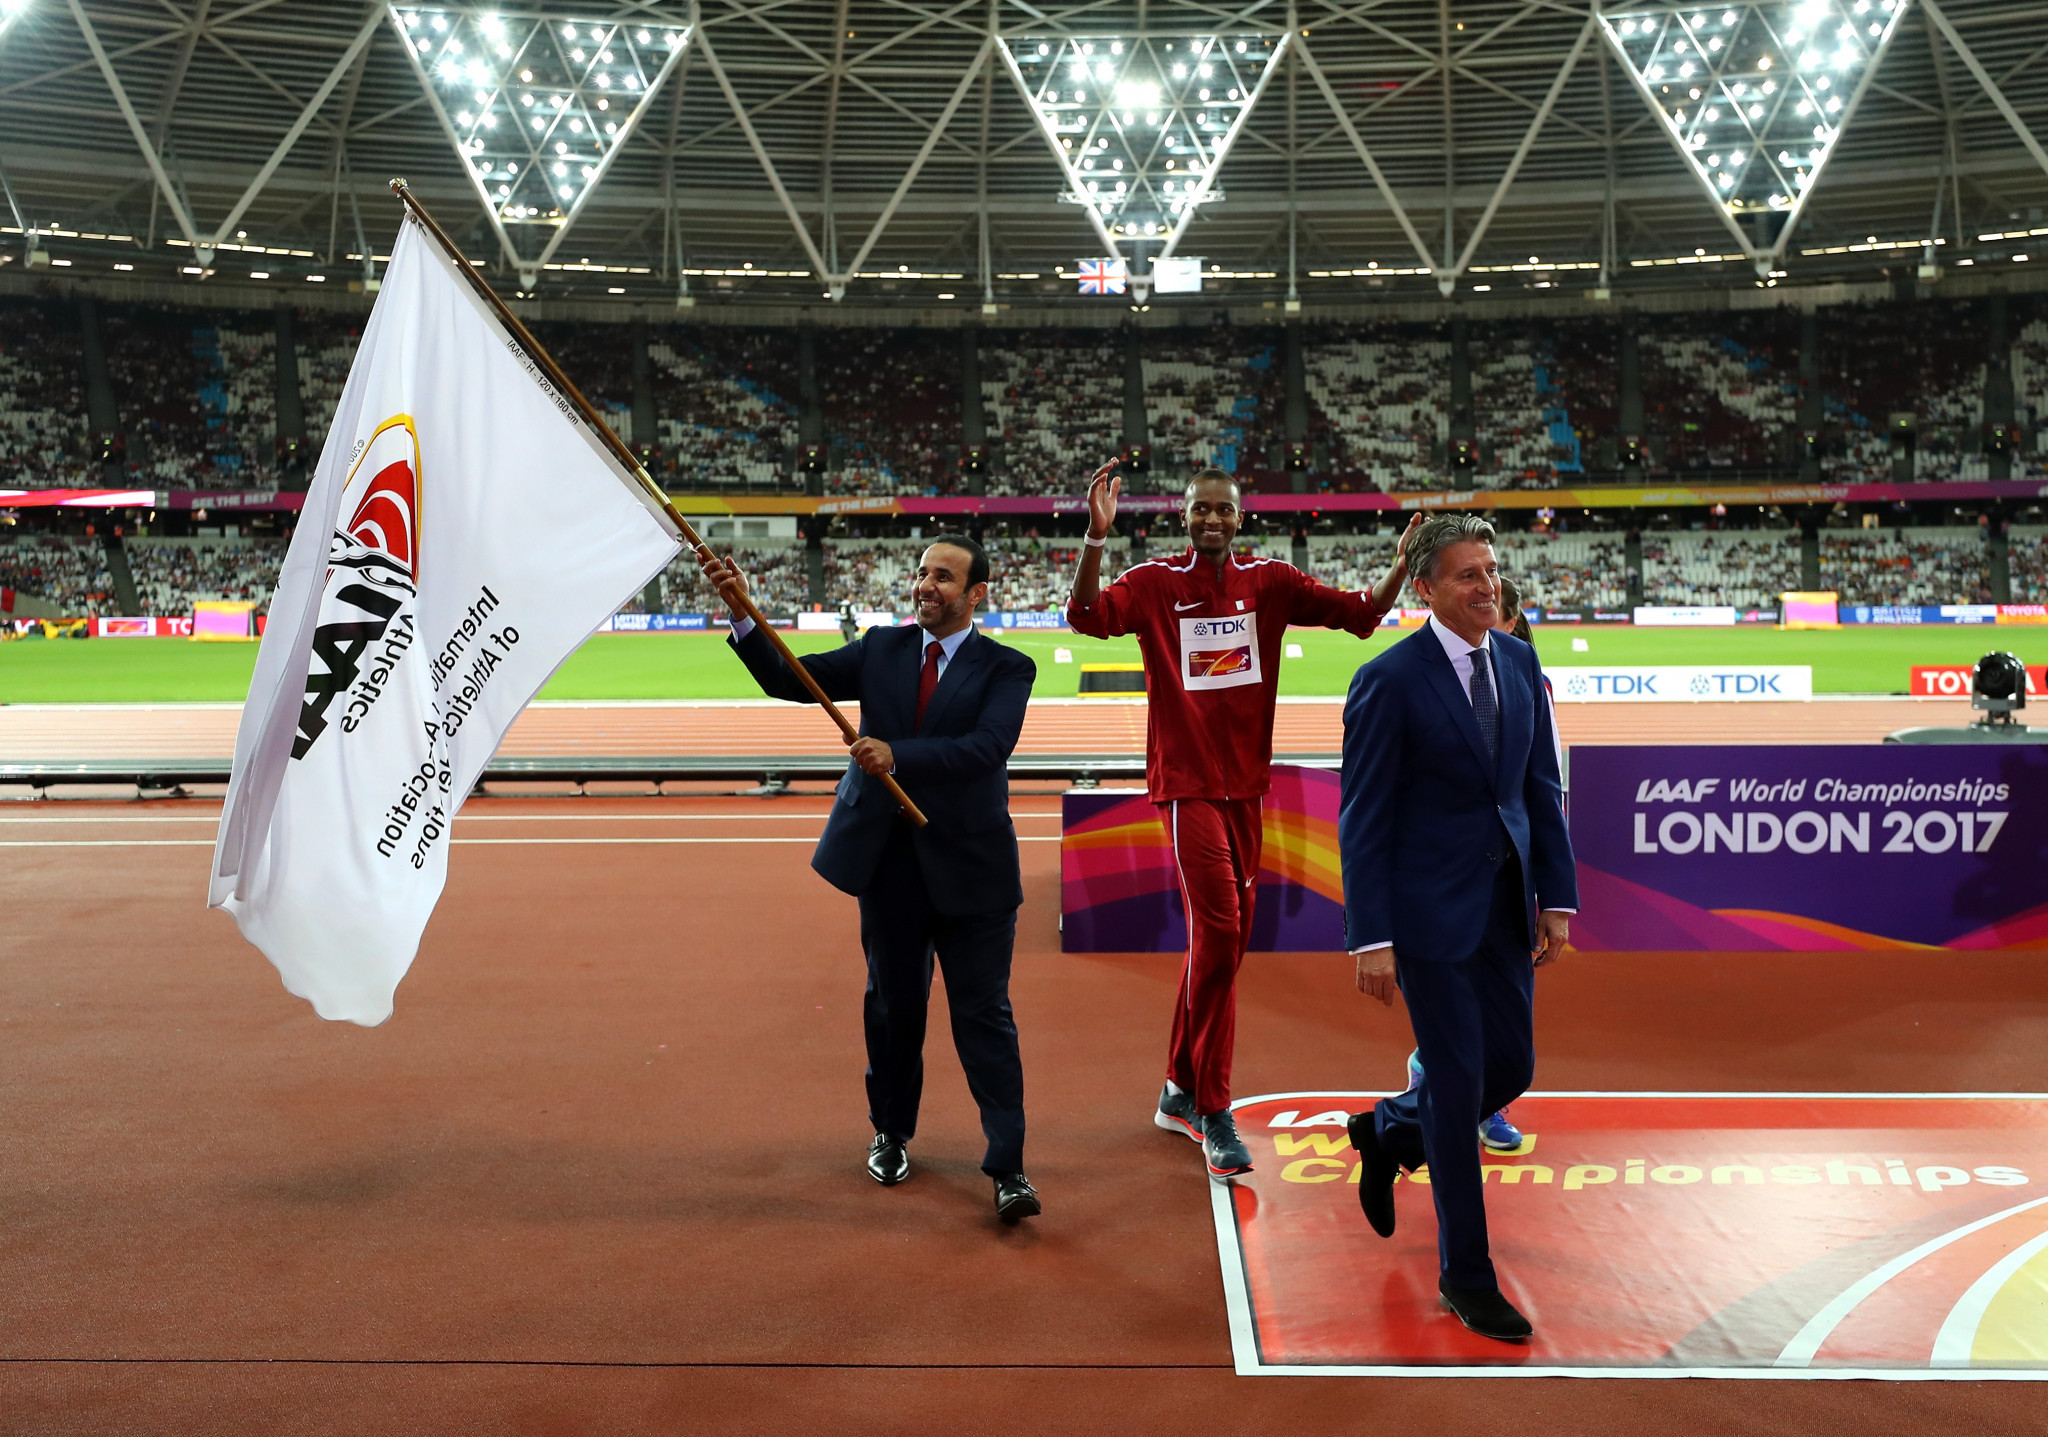 Qatar will host the next IAAF World Athletics Championships next year in Doha ©Getty Images